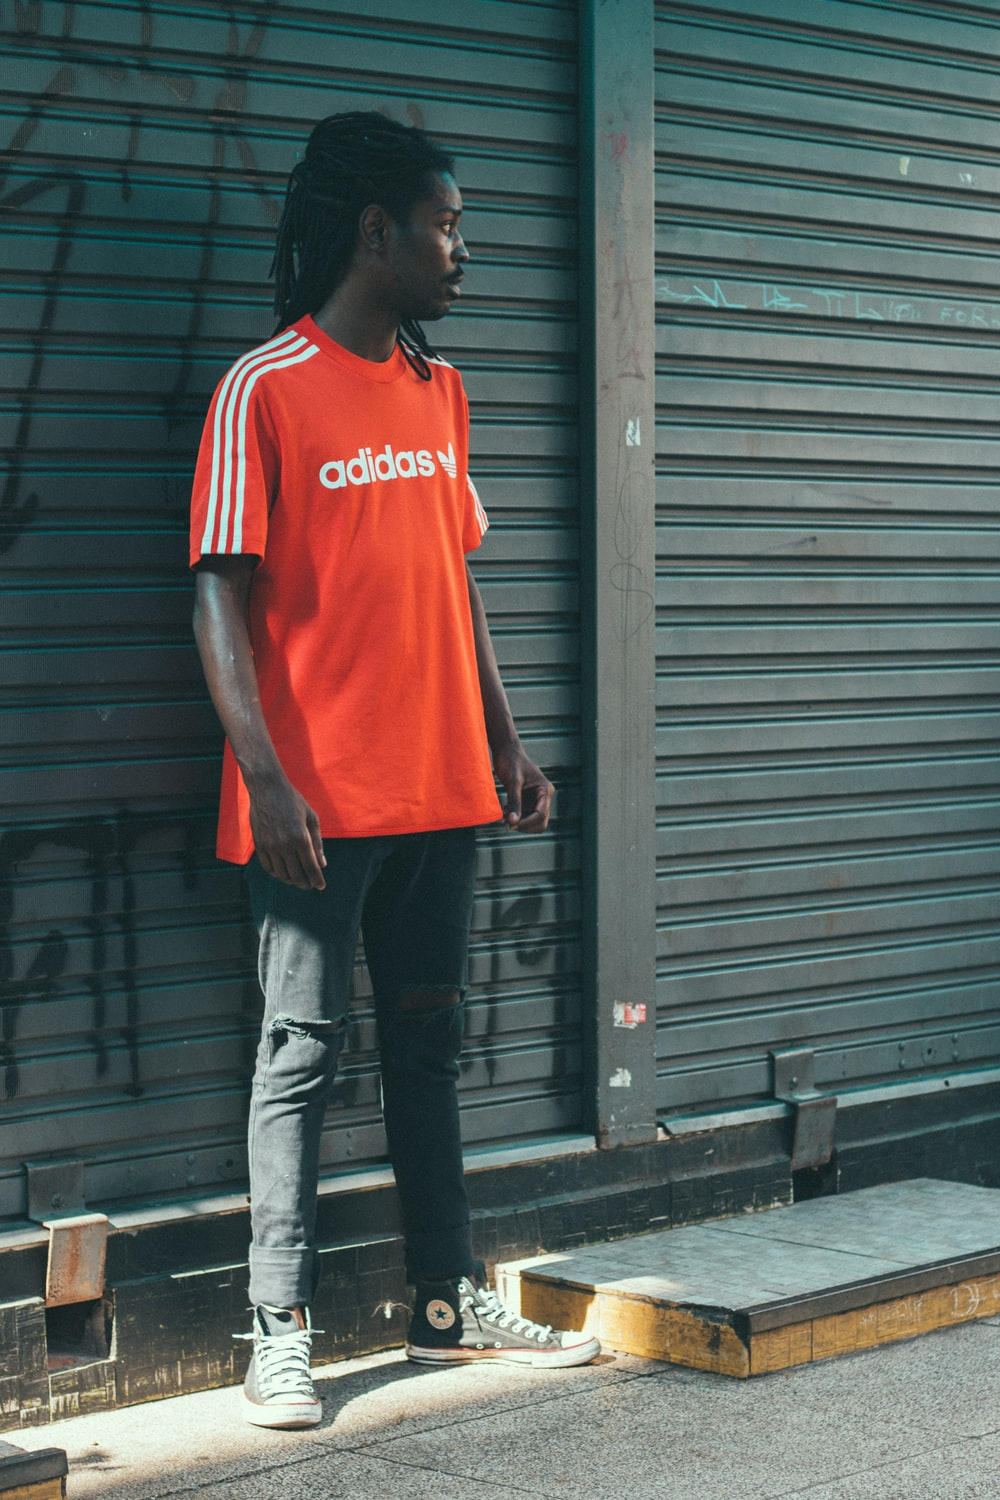 man wearing red Adidas t-shirt in front of roller shutter